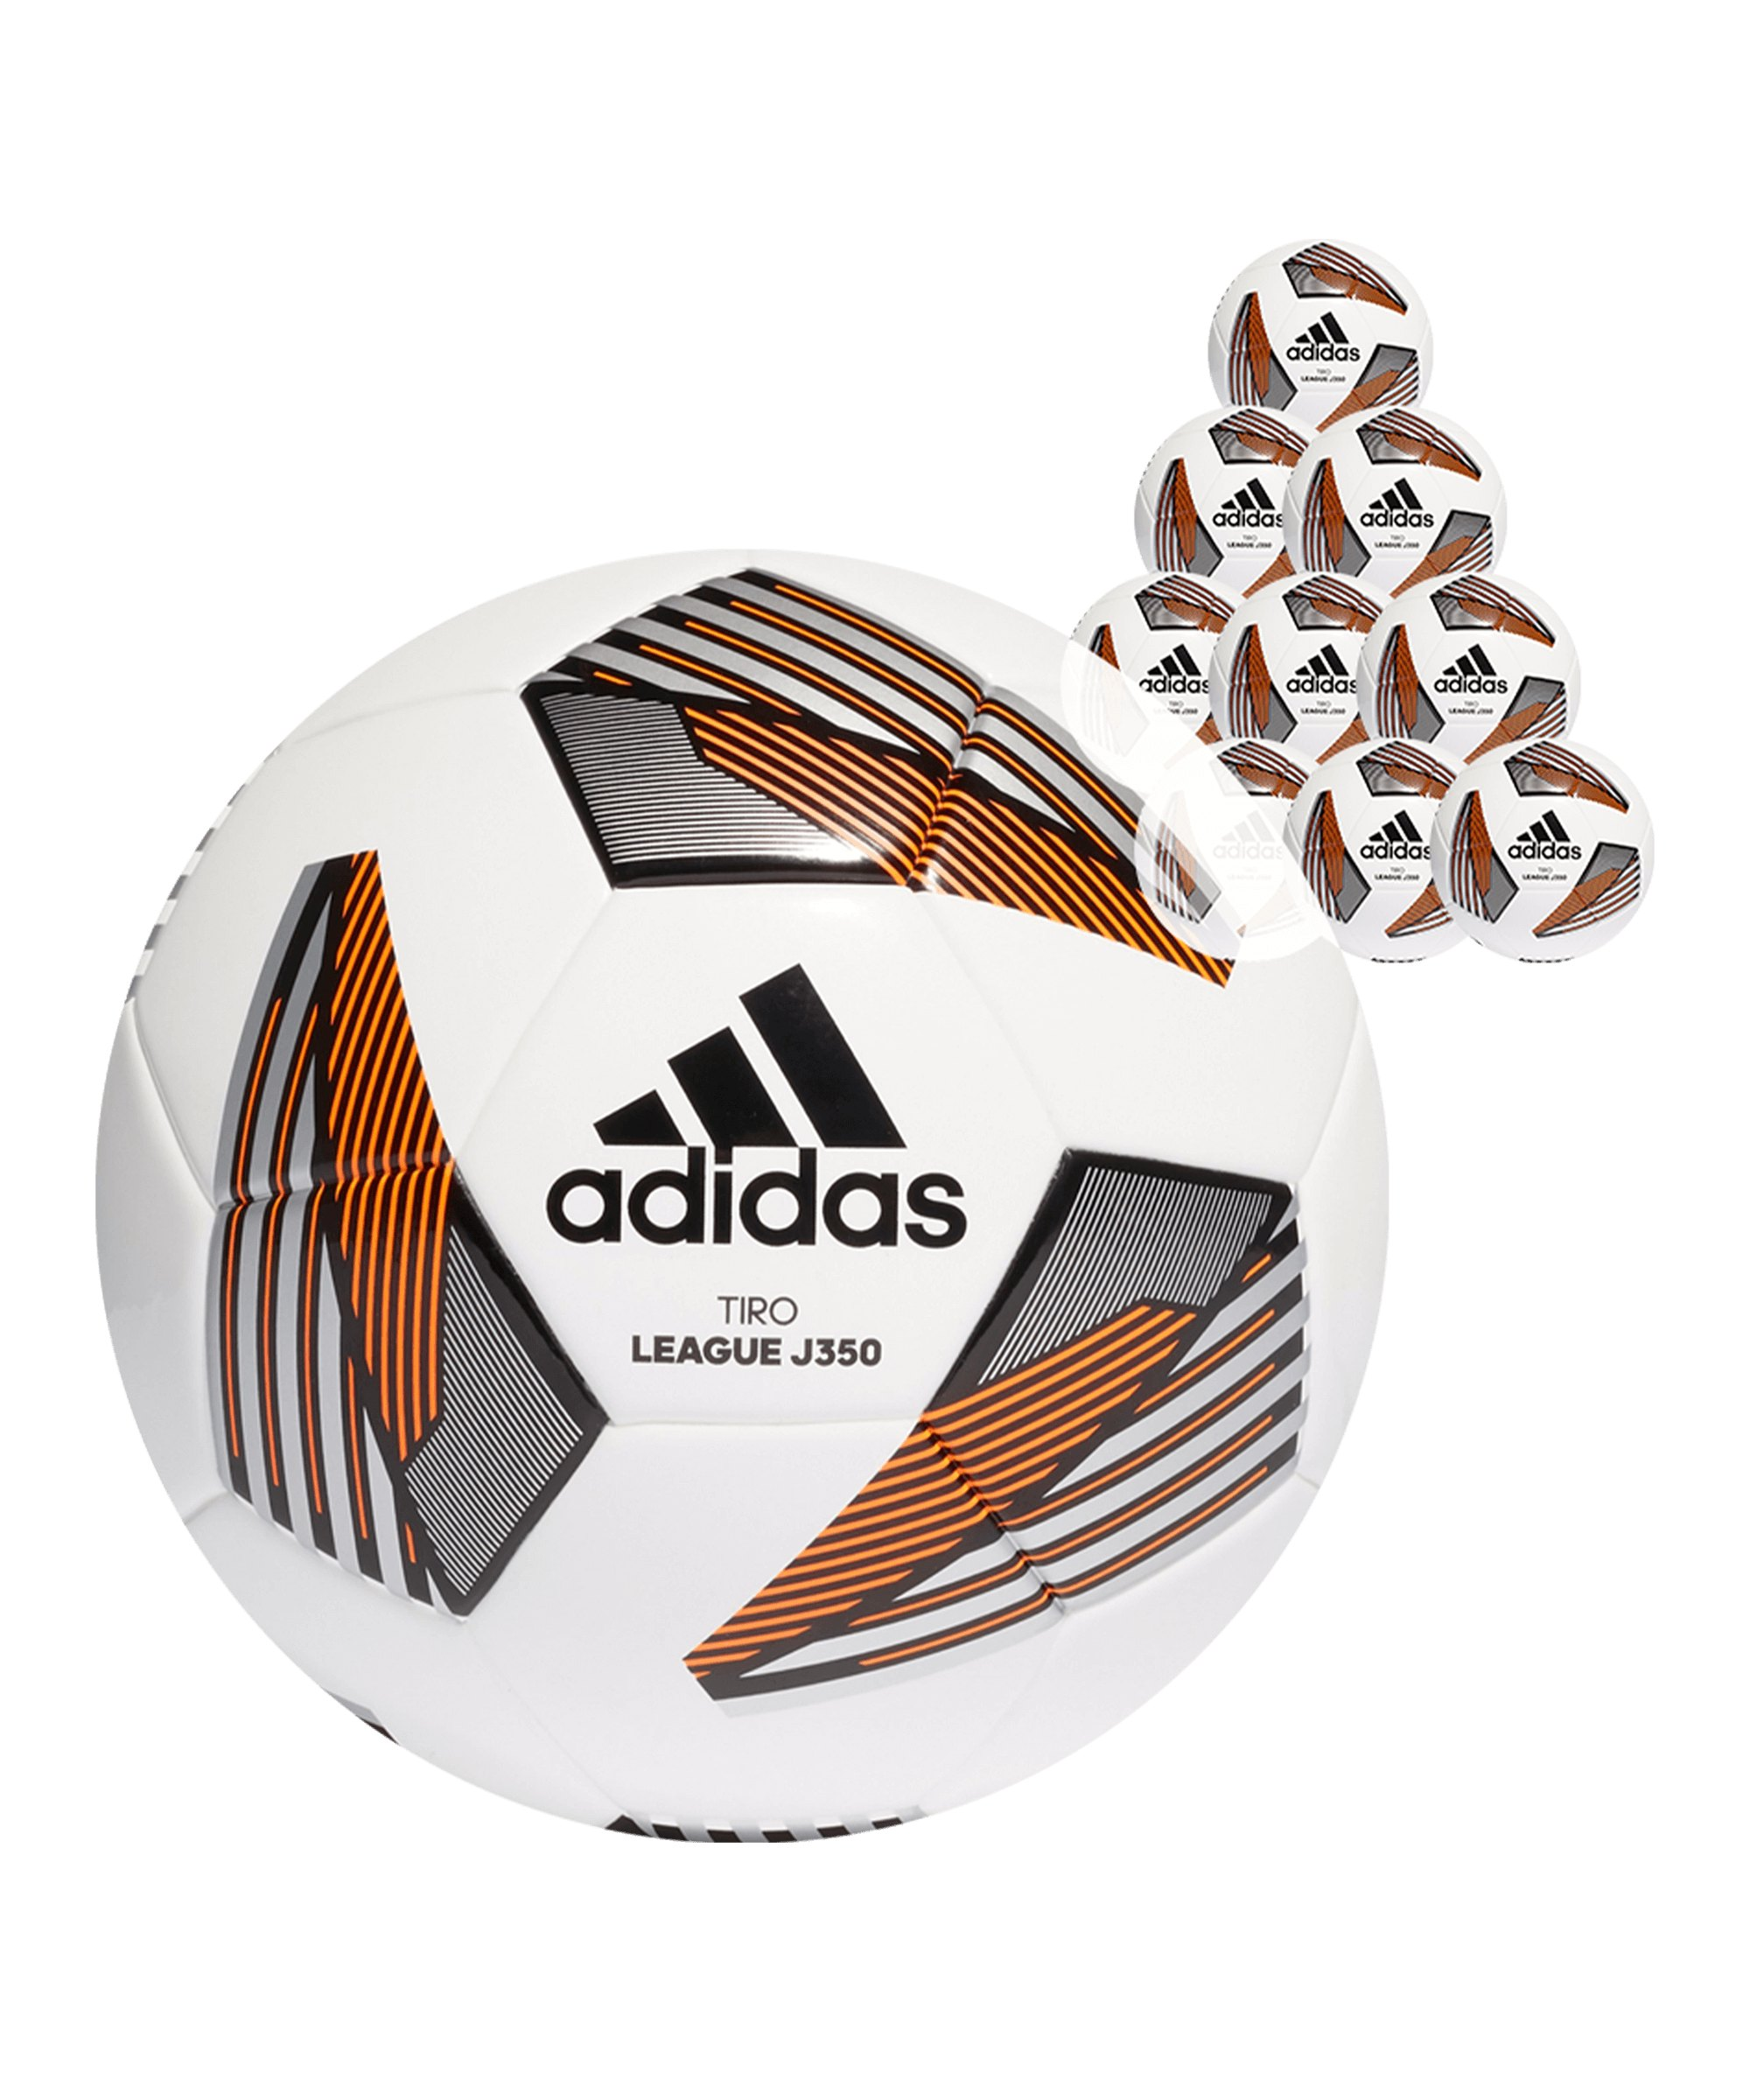 adidas Tiro League Junior 350 Gramm 50x Gr.5Fussball Weiss - weiss